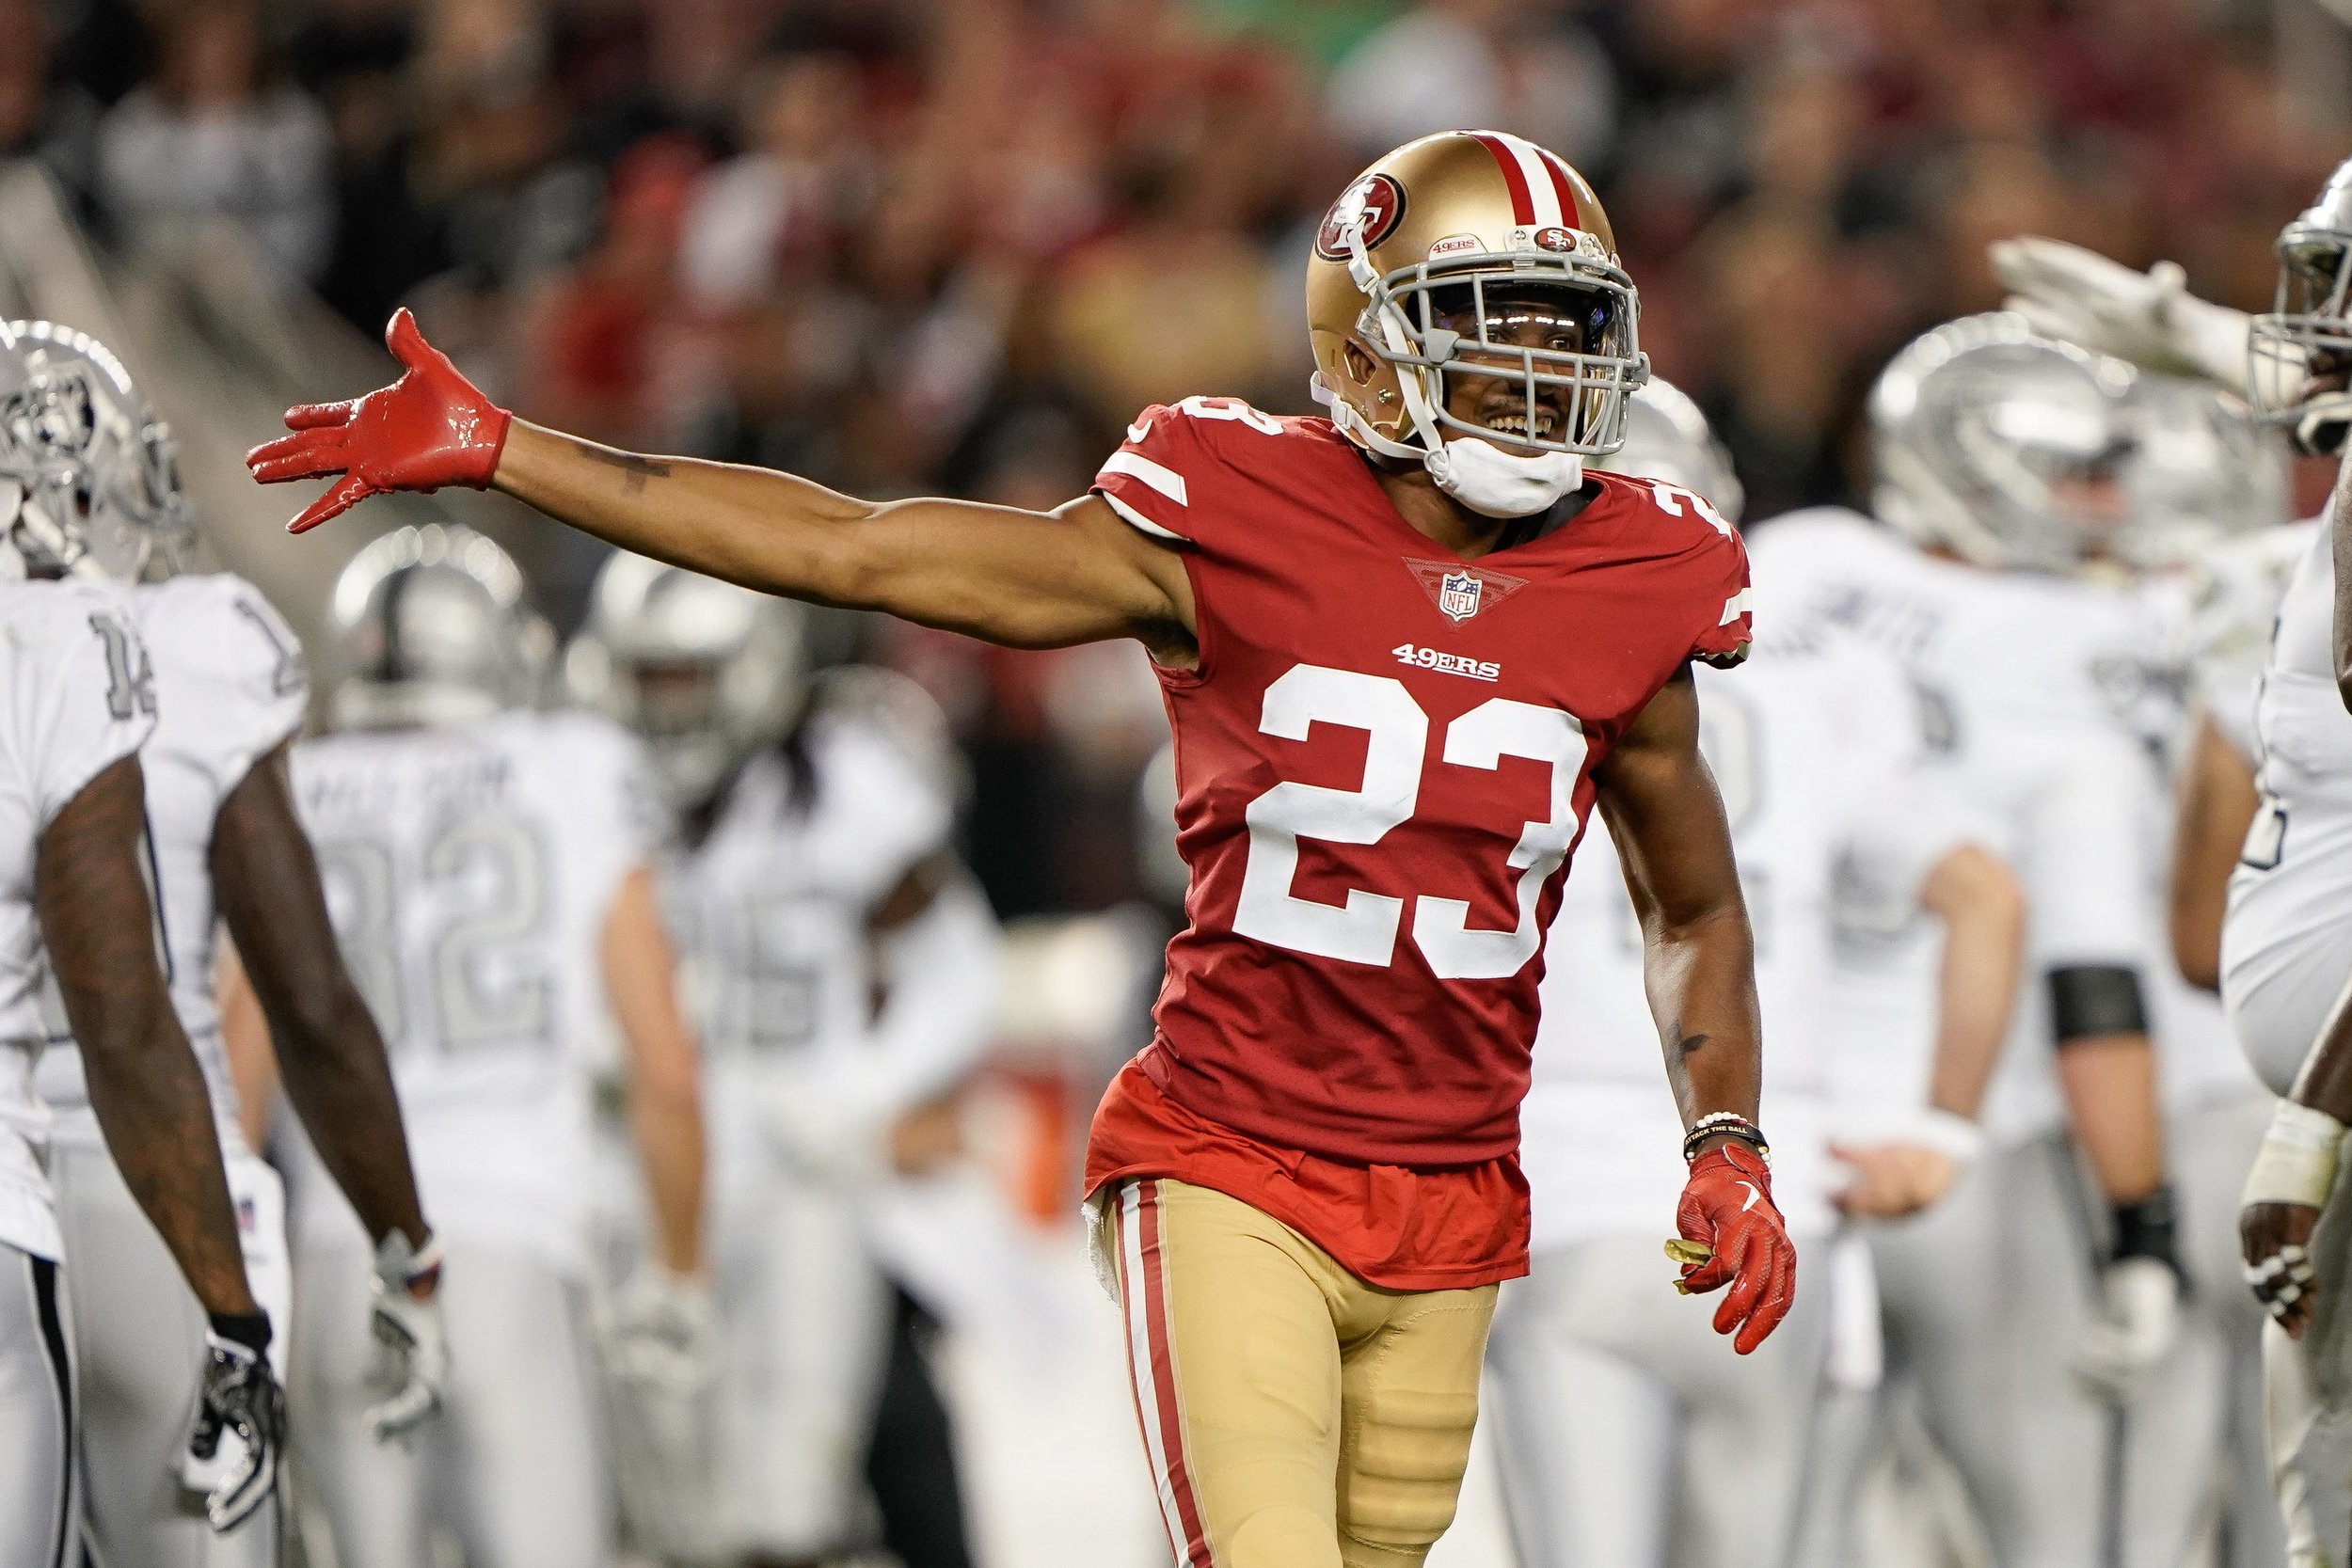 AHKELLO WITHERSPOON  CORNERBACK COLORADO 2017 DRAFT 3RD RD PICK, 66TH OVERALL SAN FRANCISCO 49ERS